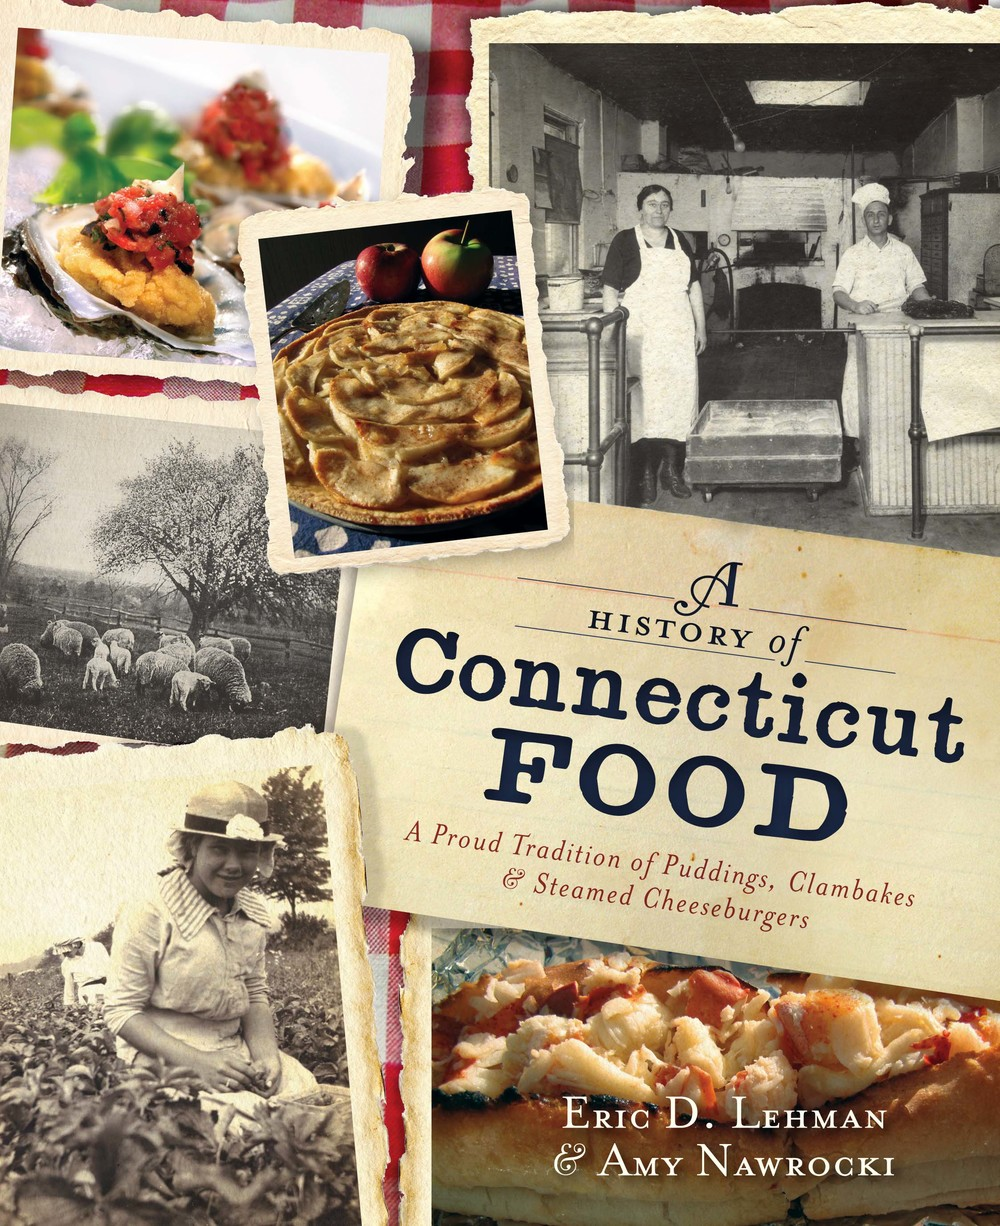 history-of-connecticut-food.jpg